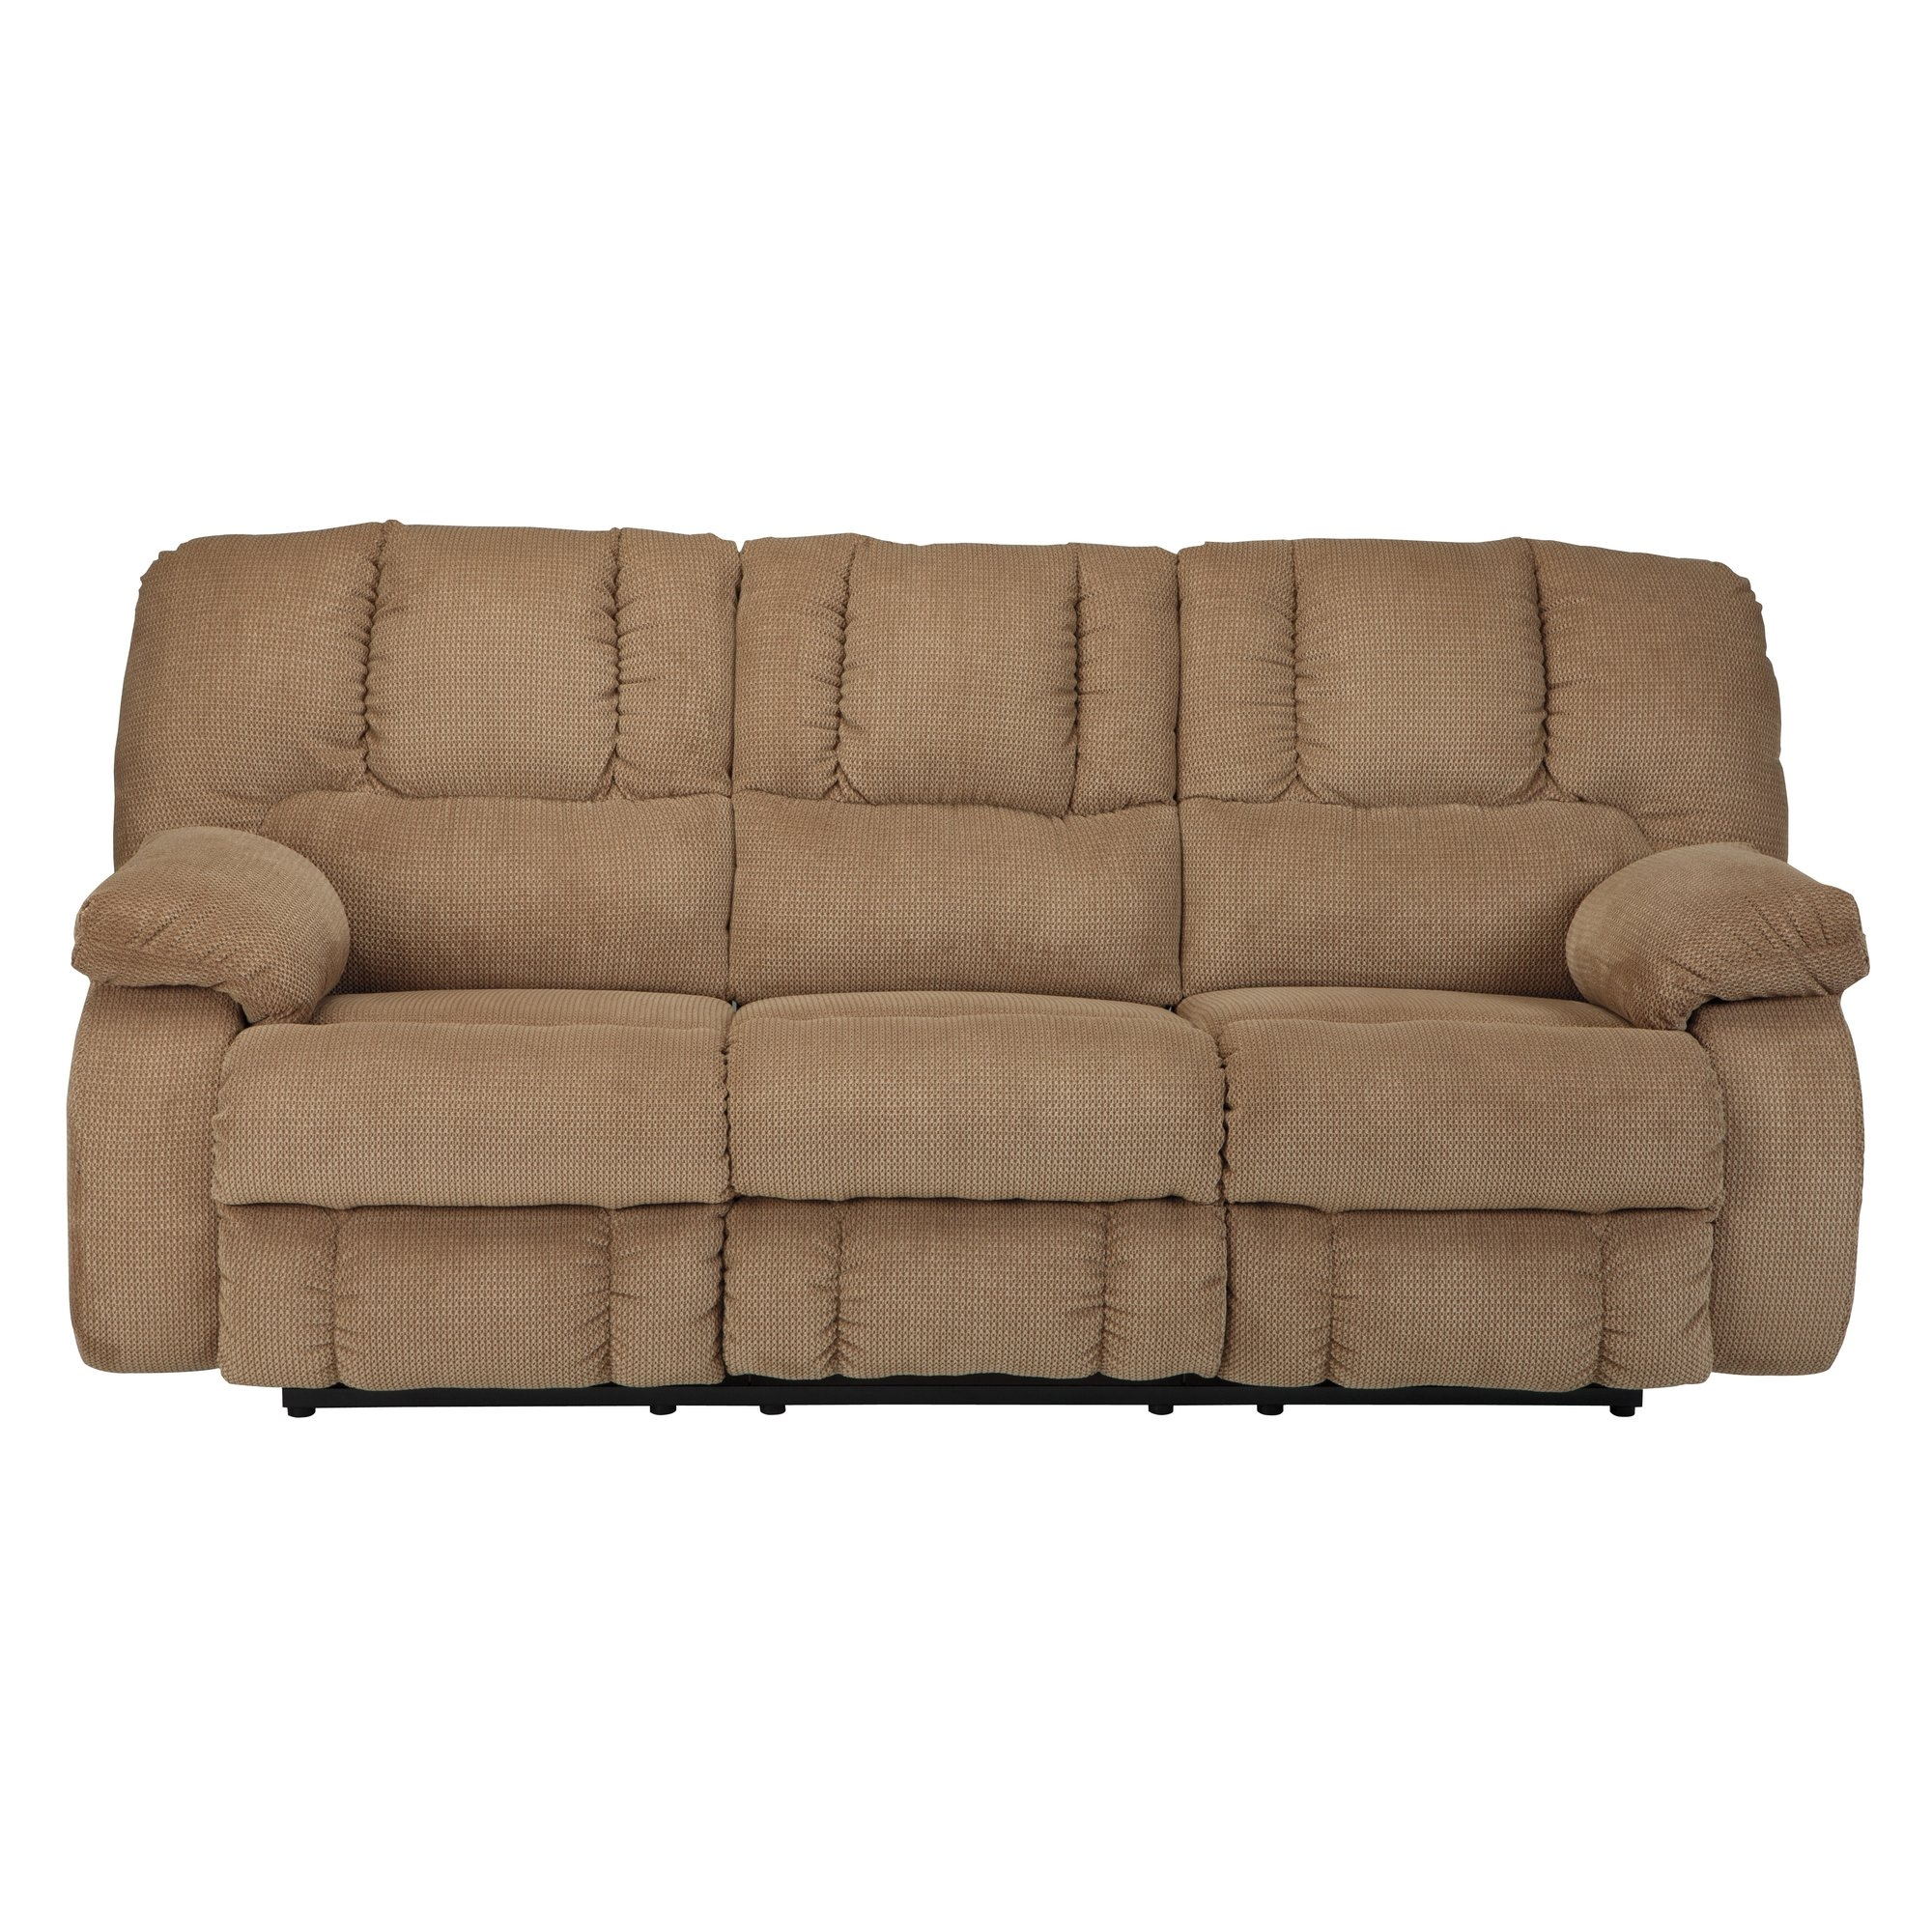 Signature Design Ashley Roan Reclining Sofa Reviews Wayfair Throughout Ashley Tufted Sofa (Image 12 of 15)